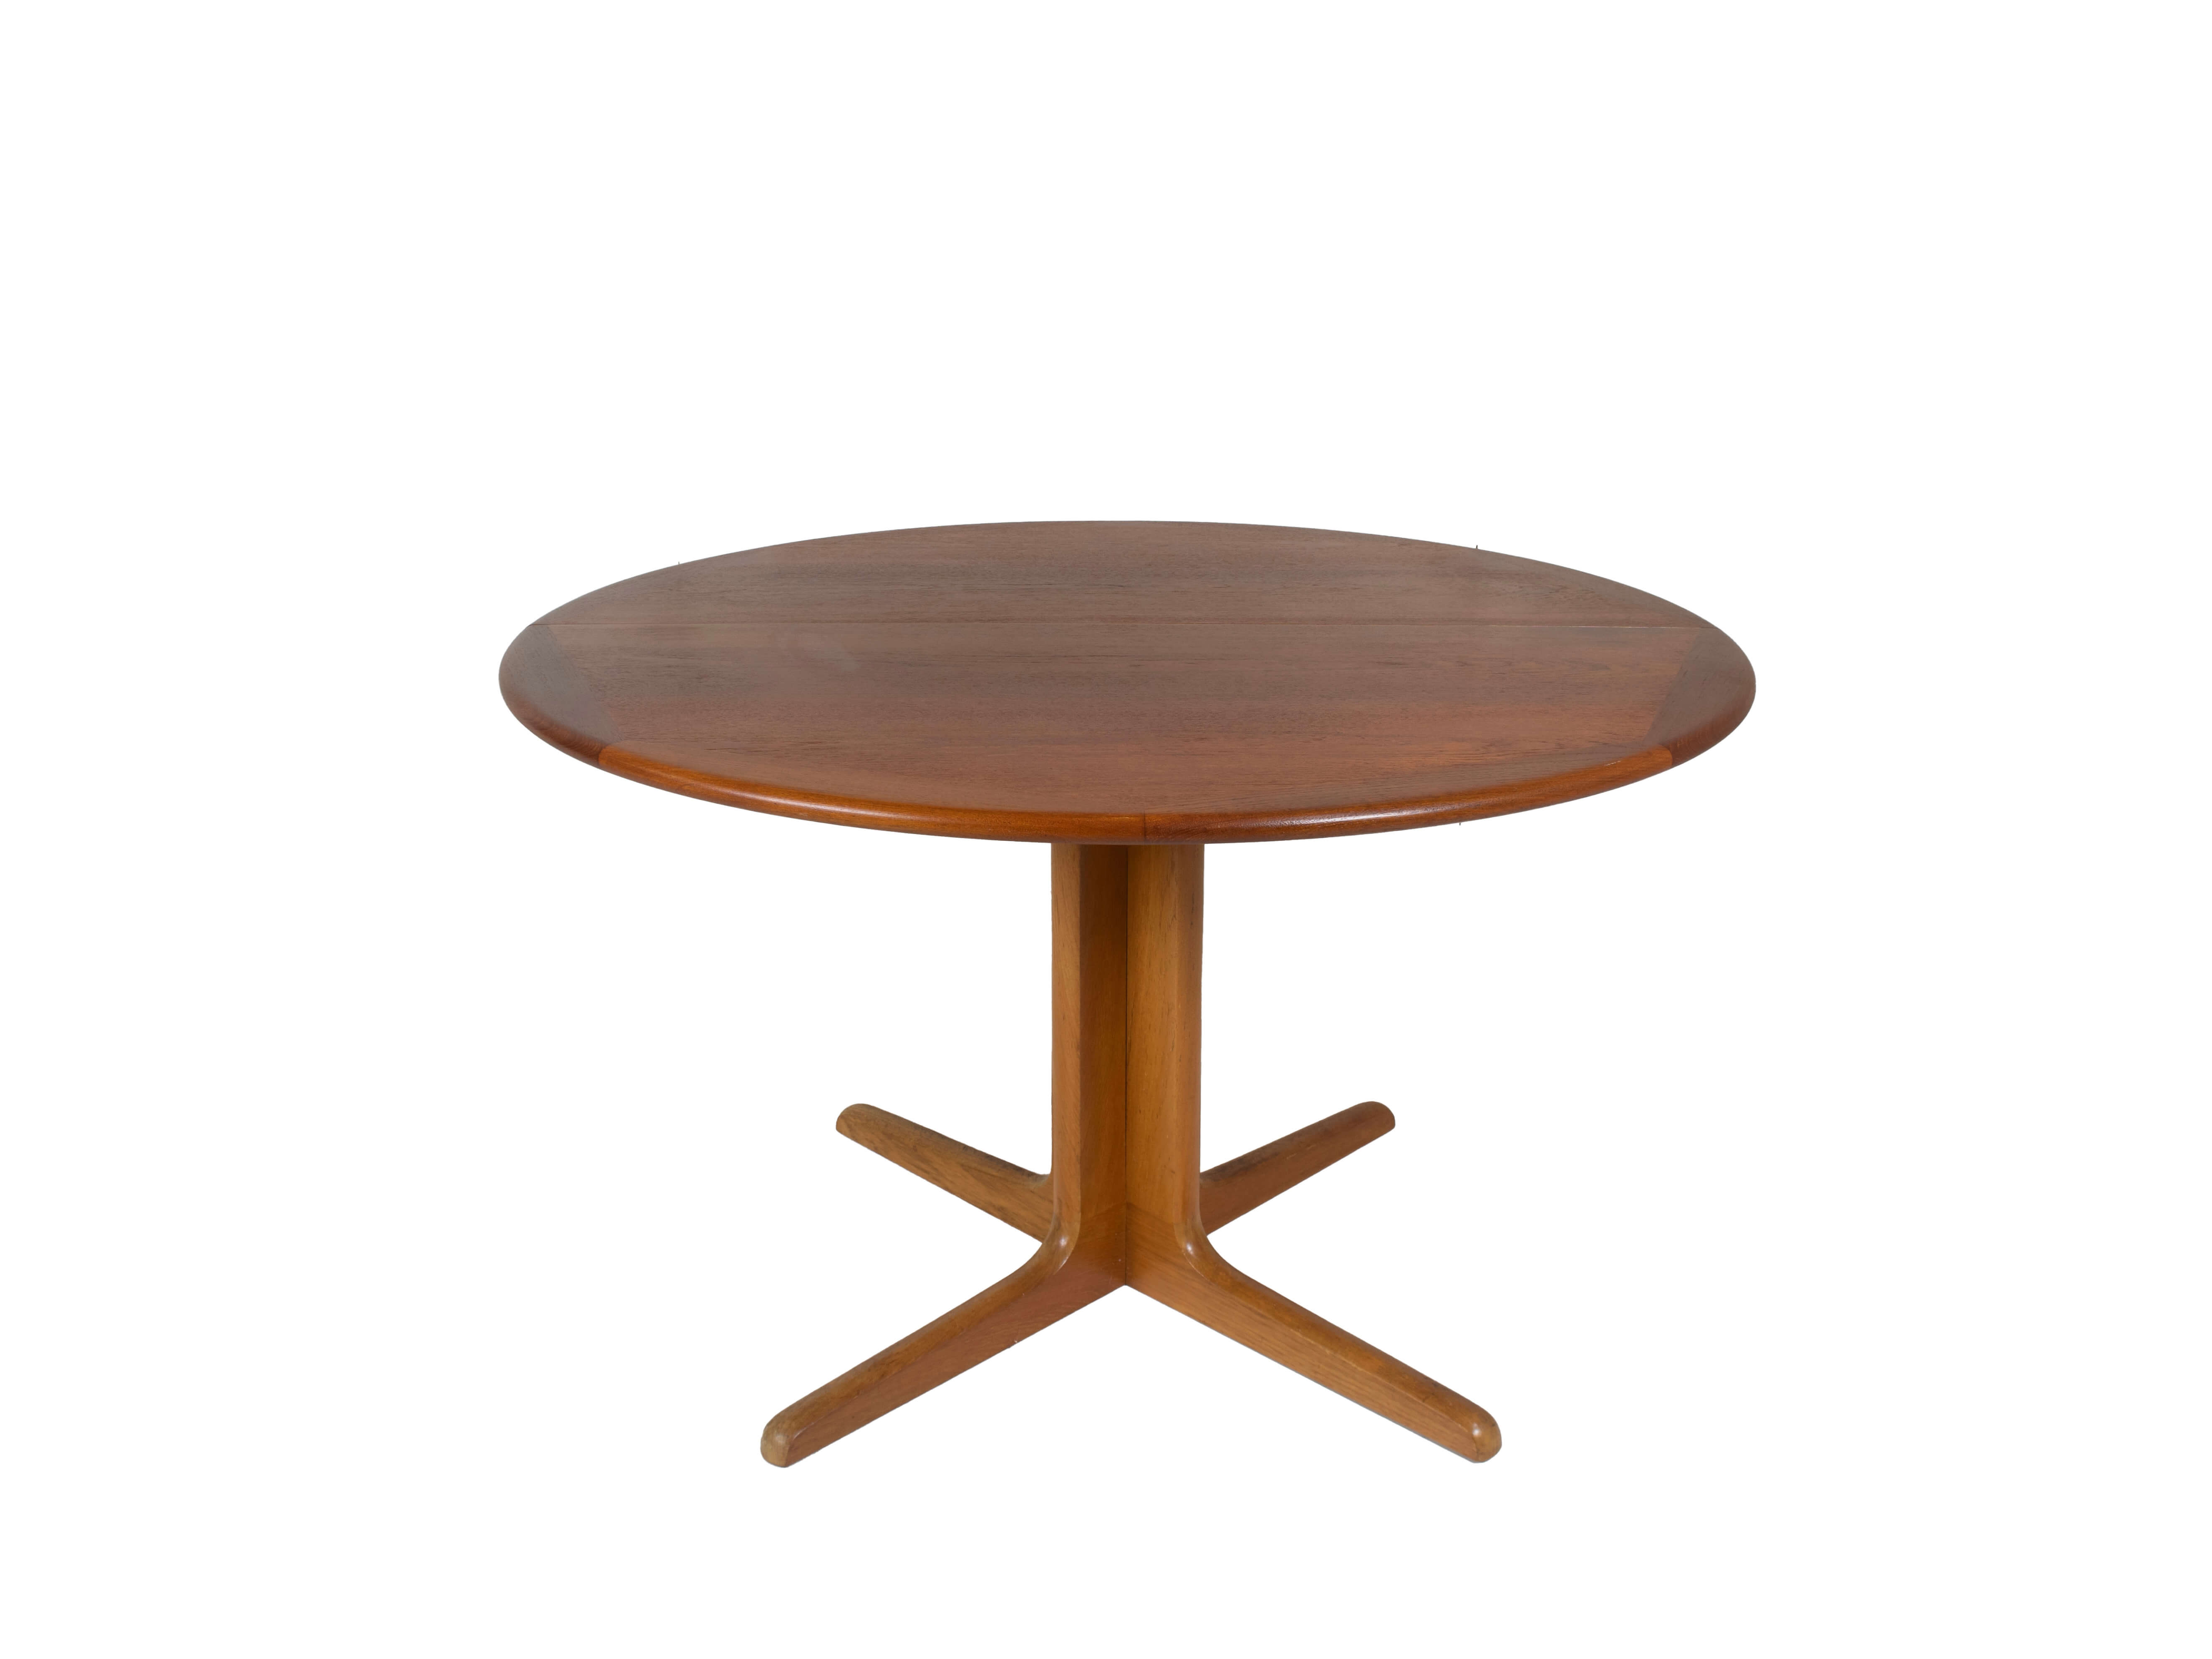 Extendable Dining Table in Teak attr. to Niels Otto Moller for Gudme, Denmark 1960s